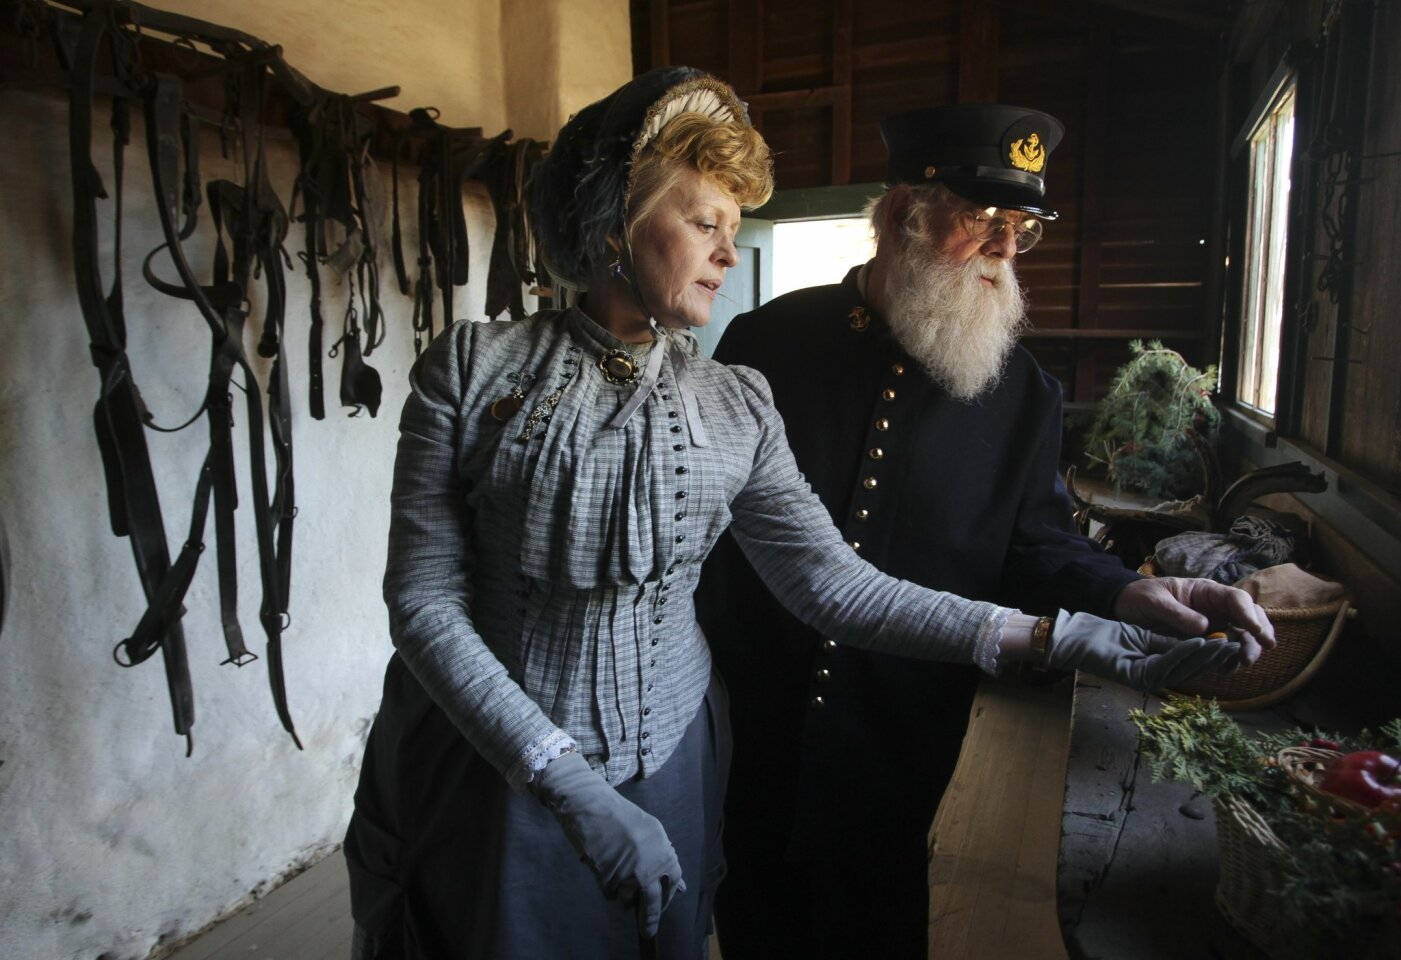 Bob Munson wears the uniform of a steam ship captain while his wife Nancy Munson wears clothing from 1887 as they look at items in the tack room during Rancho Christmas 2013 at the Rancho Guajome Adobe County Park in Vista on Sunday, December 1, 2013.